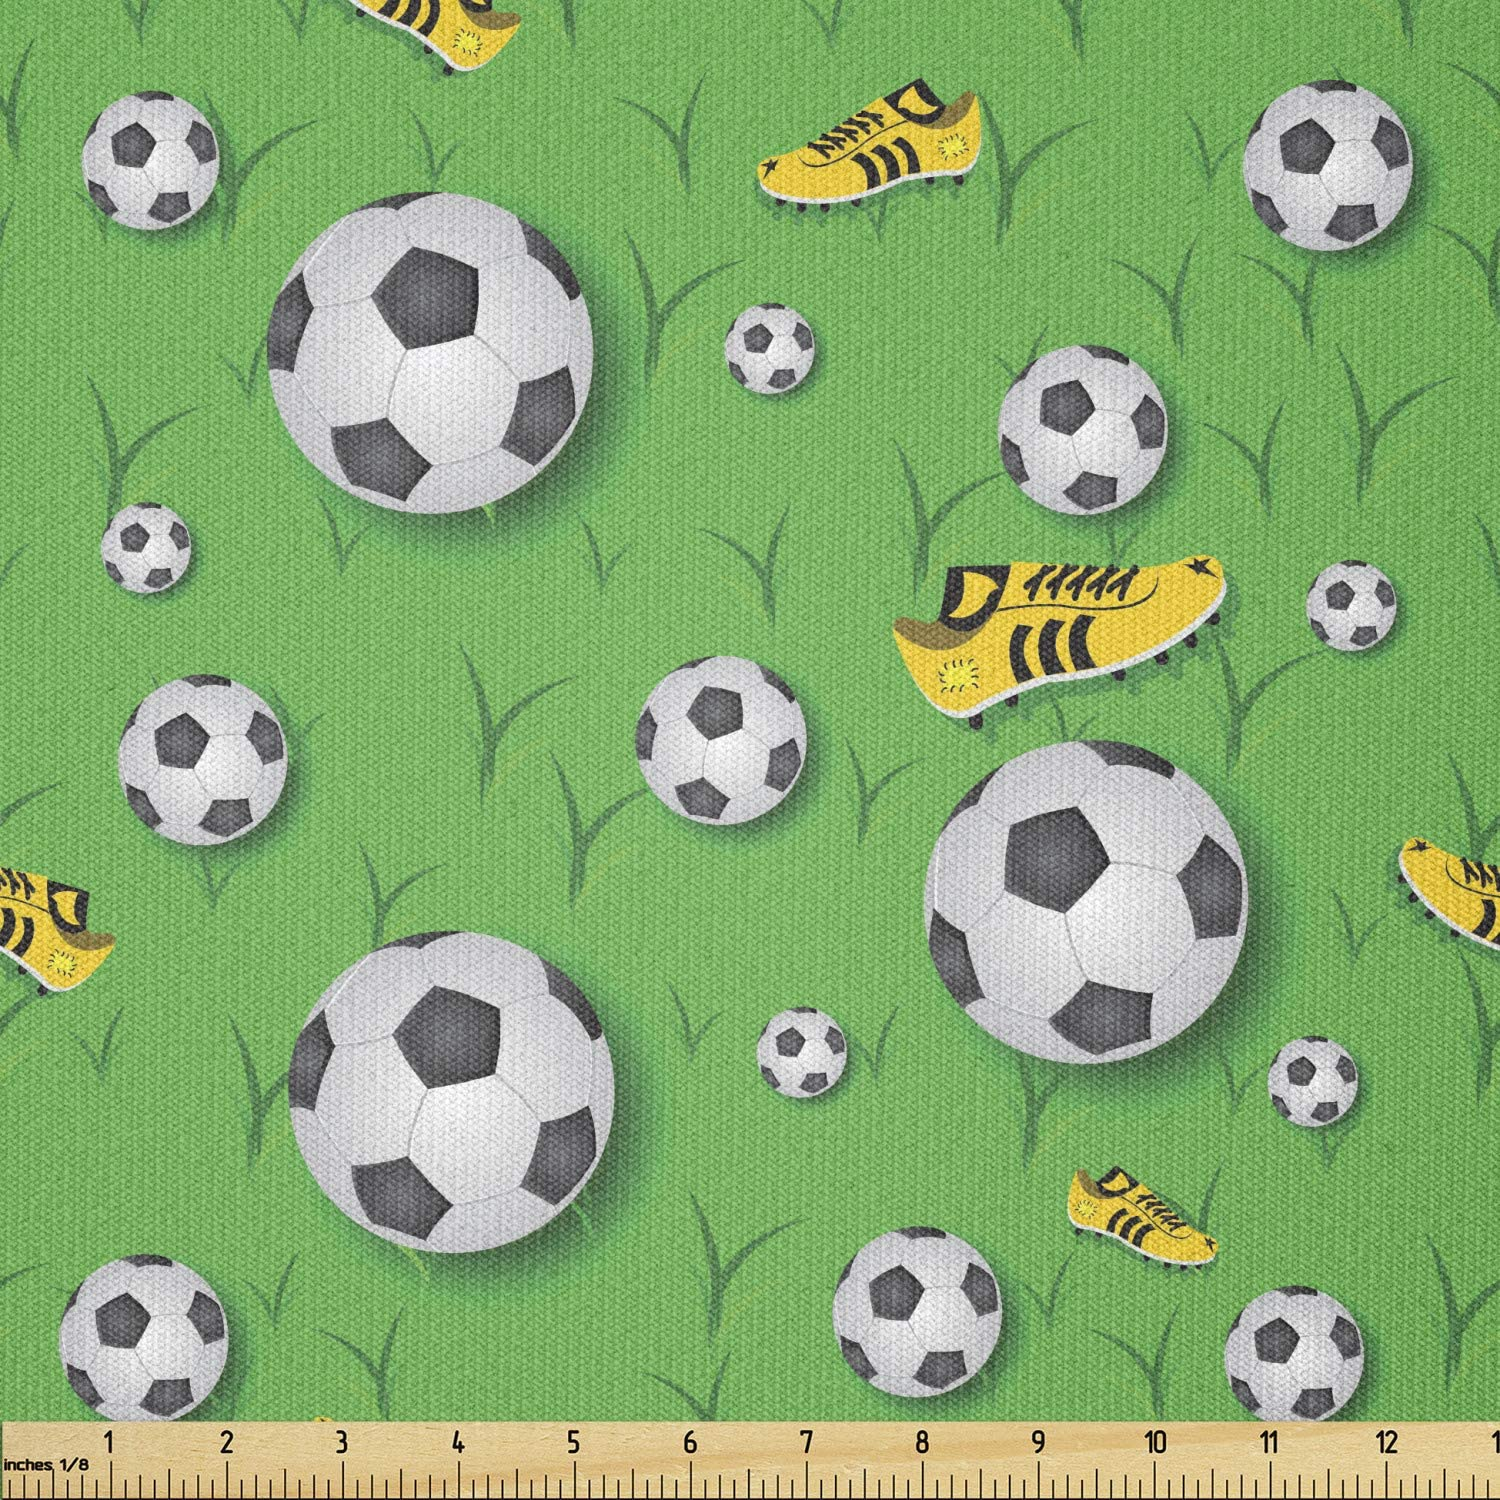 Ambesonne Soccer Fabric by The Yard, Professional Player Athletics Pattern Football Shoes Balls on Grass, Stretch Knit Fabric for Clothing Sewing and Arts Crafts, 1 Yard, Lime Green